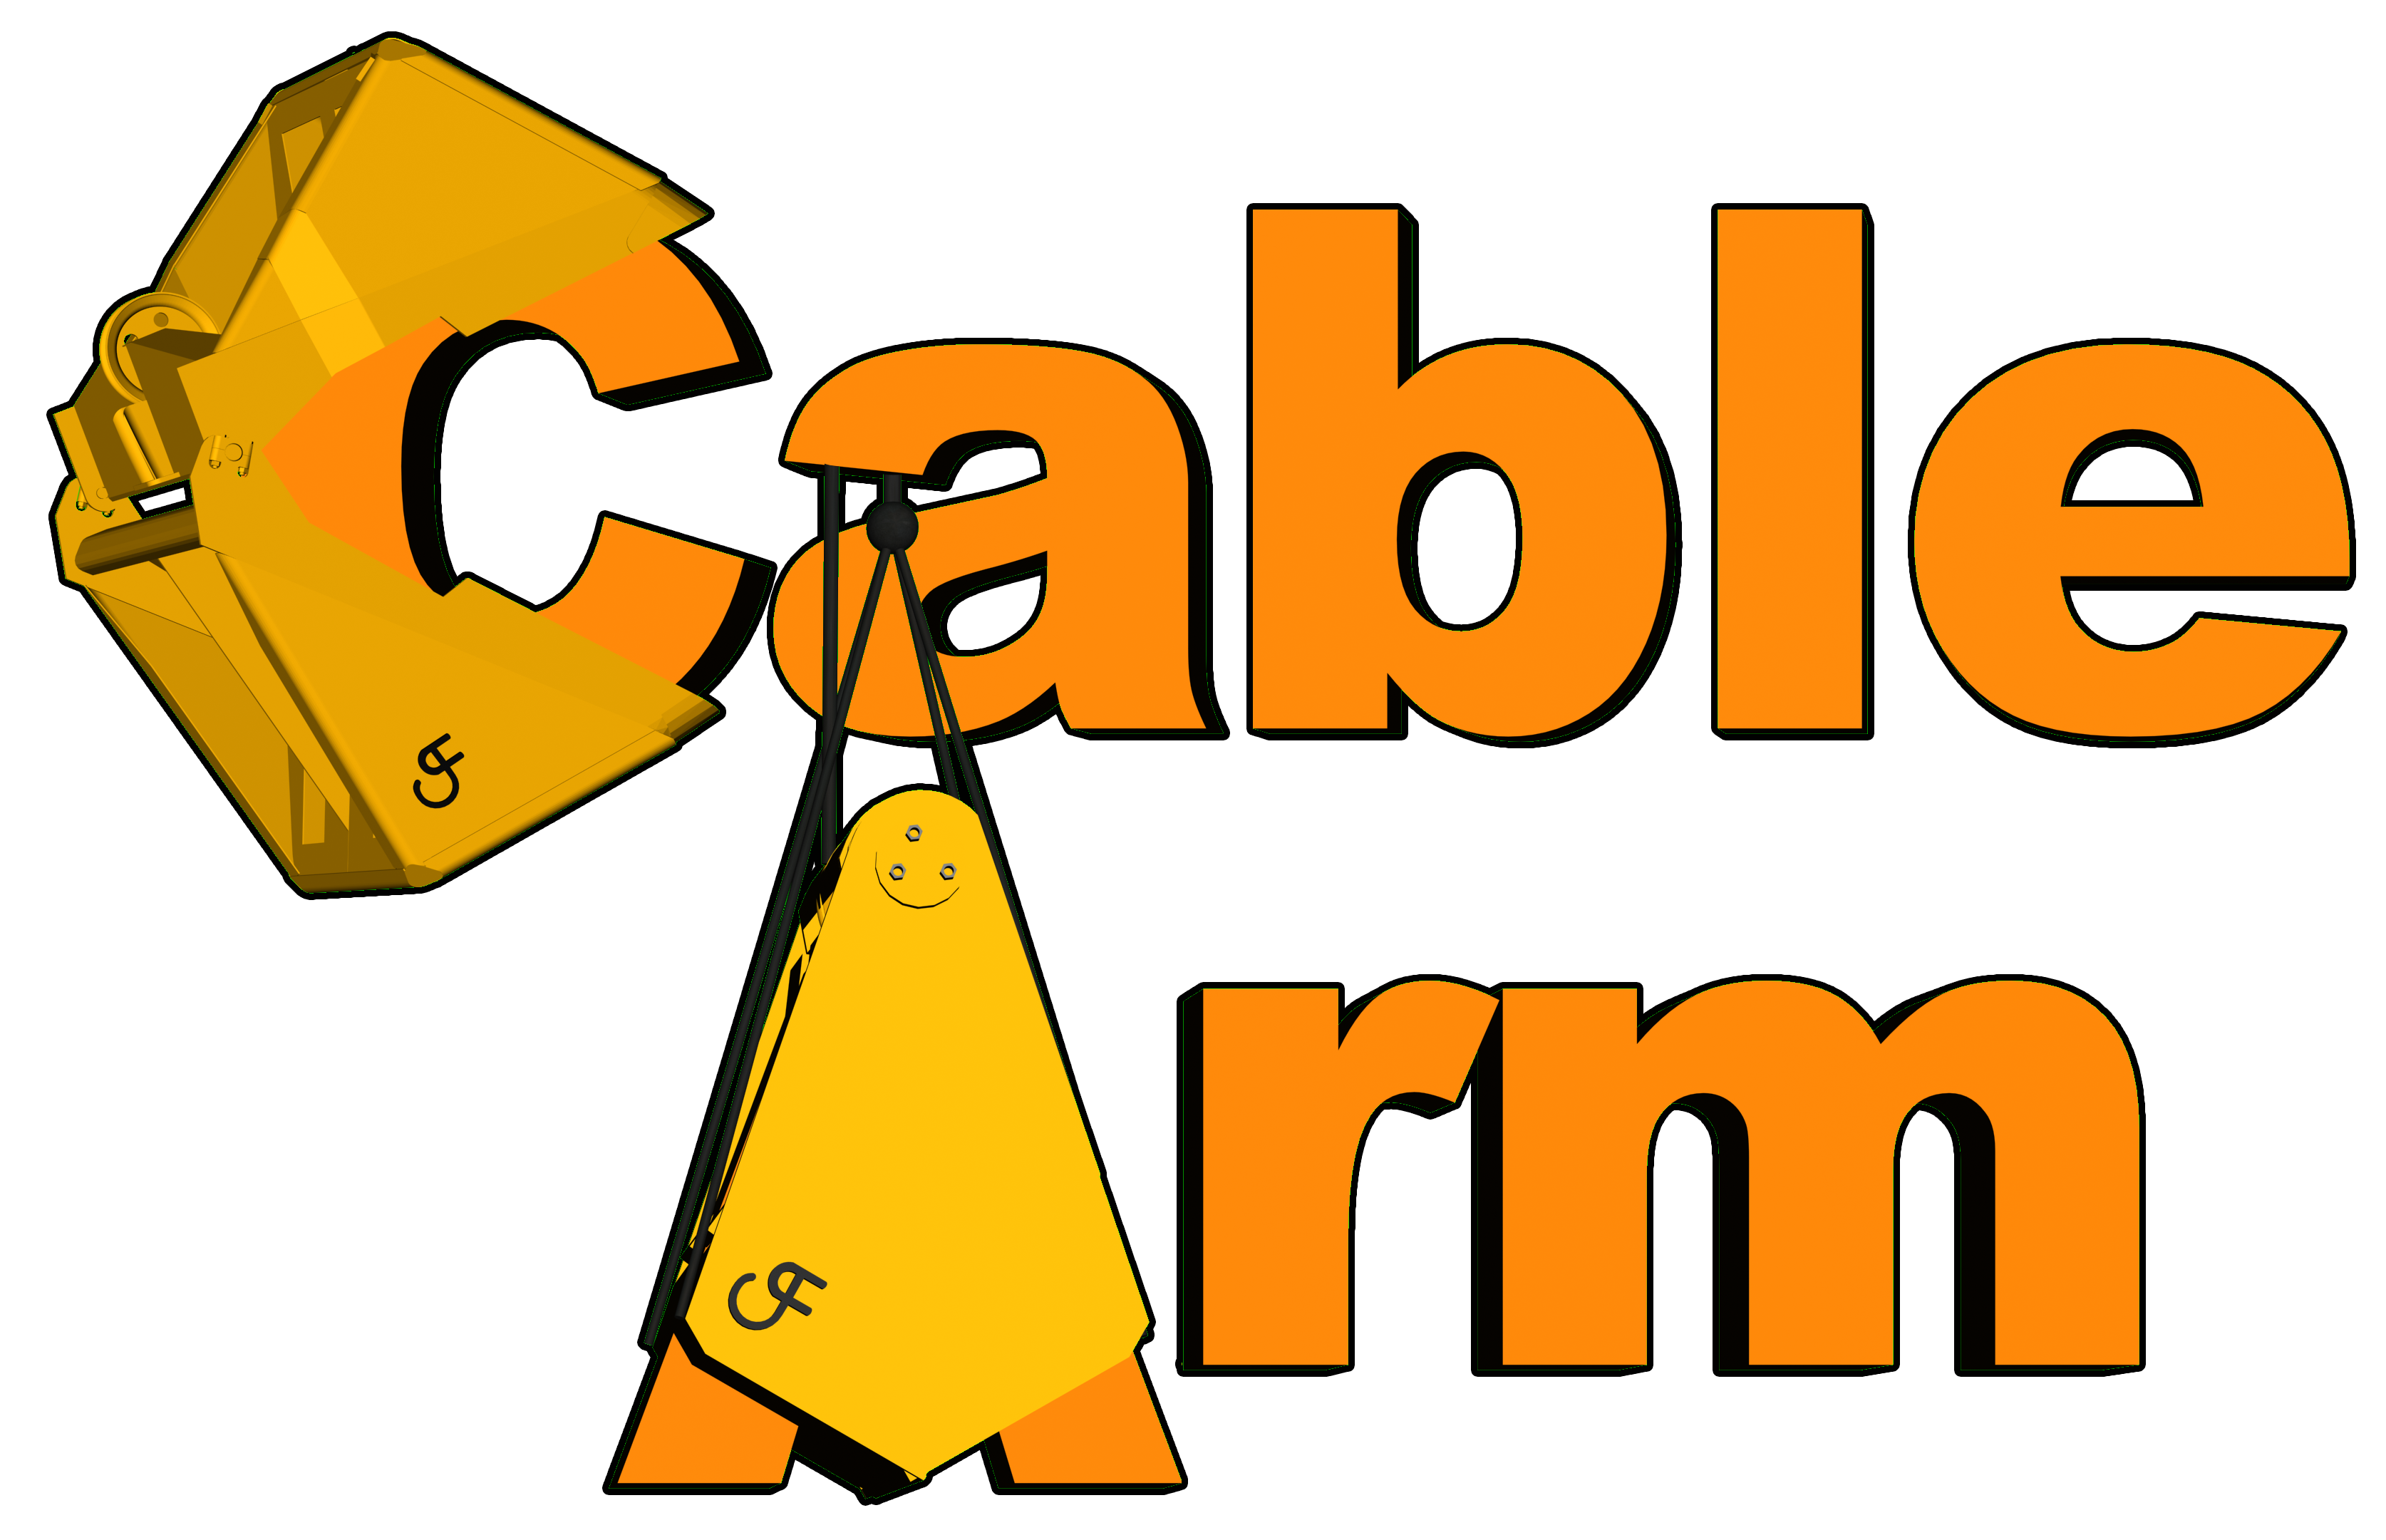 Excavator clipart dredging. Cable arm media positioning